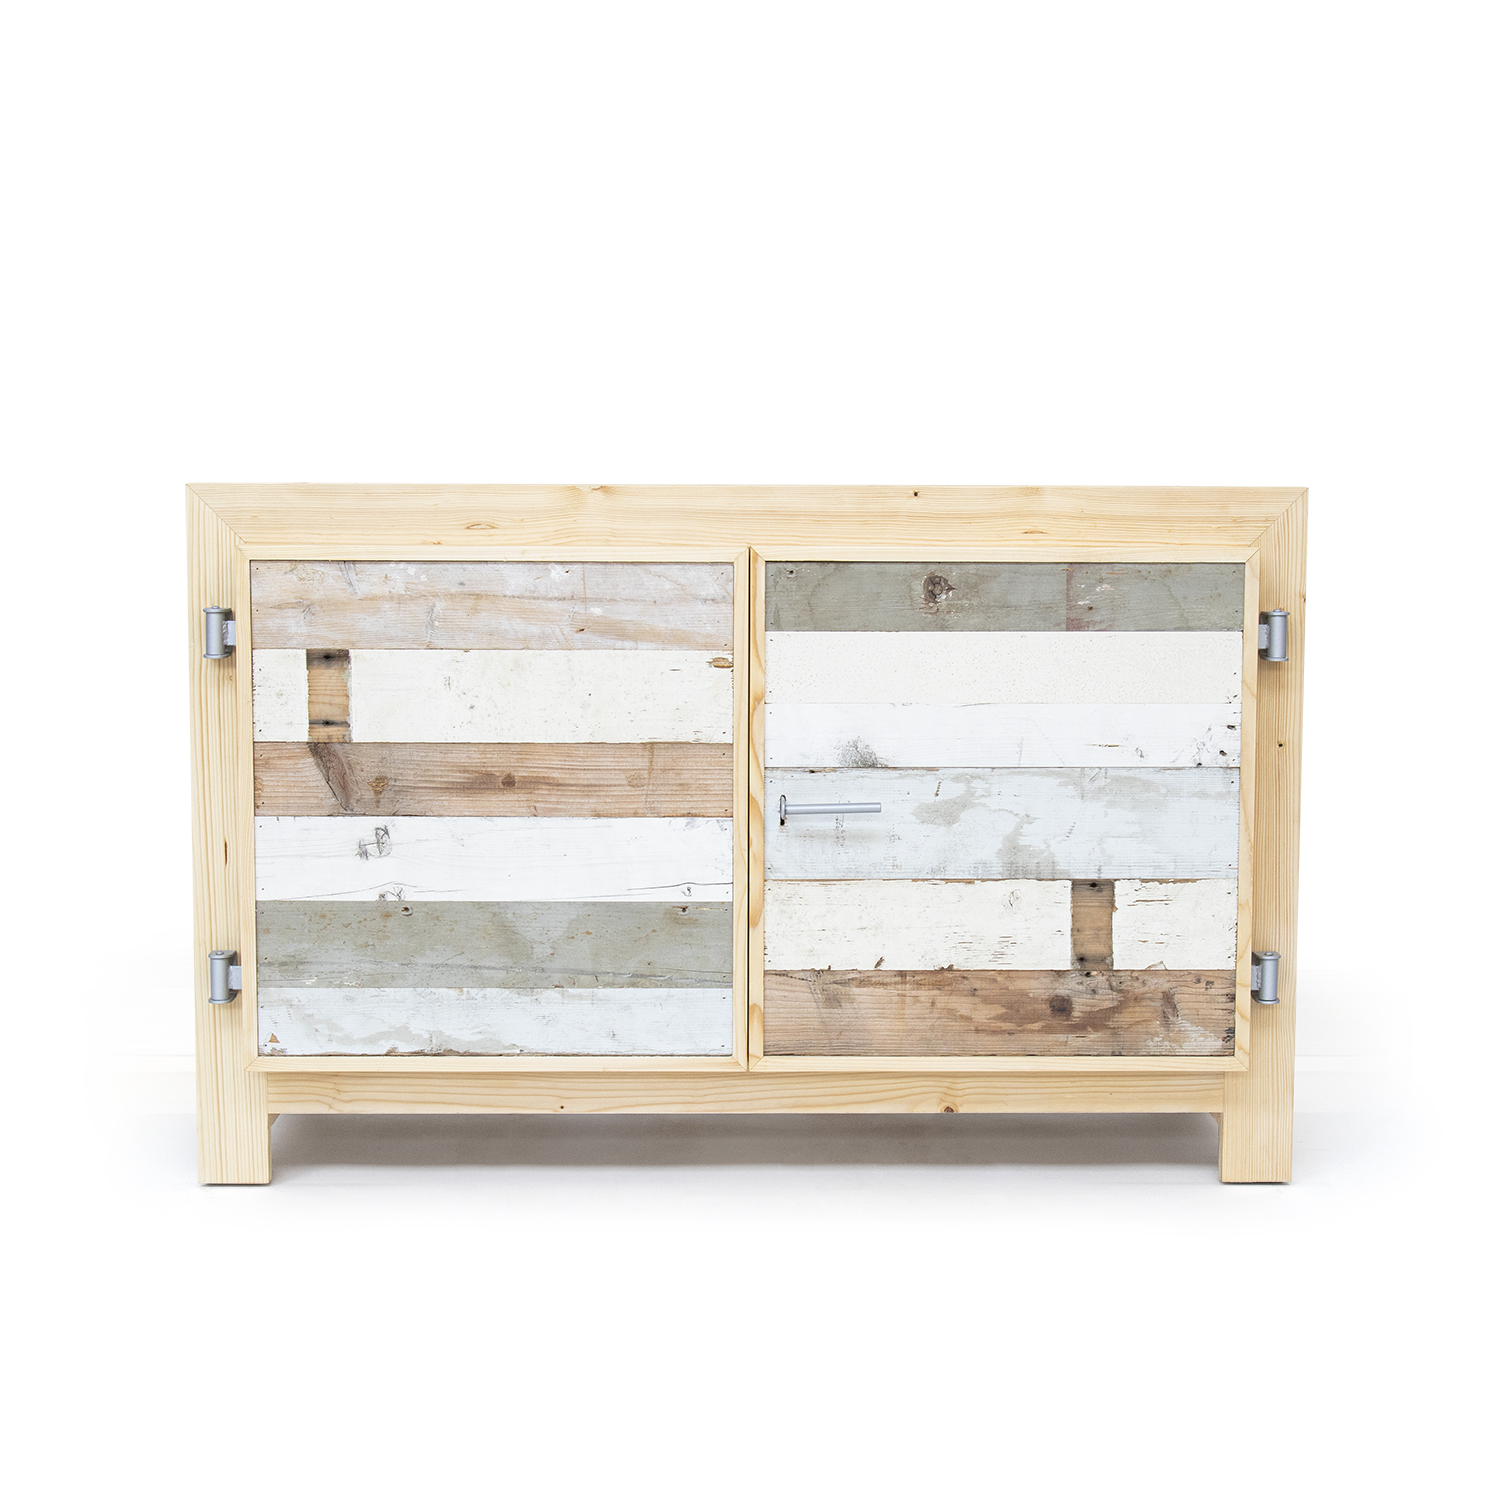 01_Ray_Hunter_Dressoir_in_Sloophout_front01_thumbnail